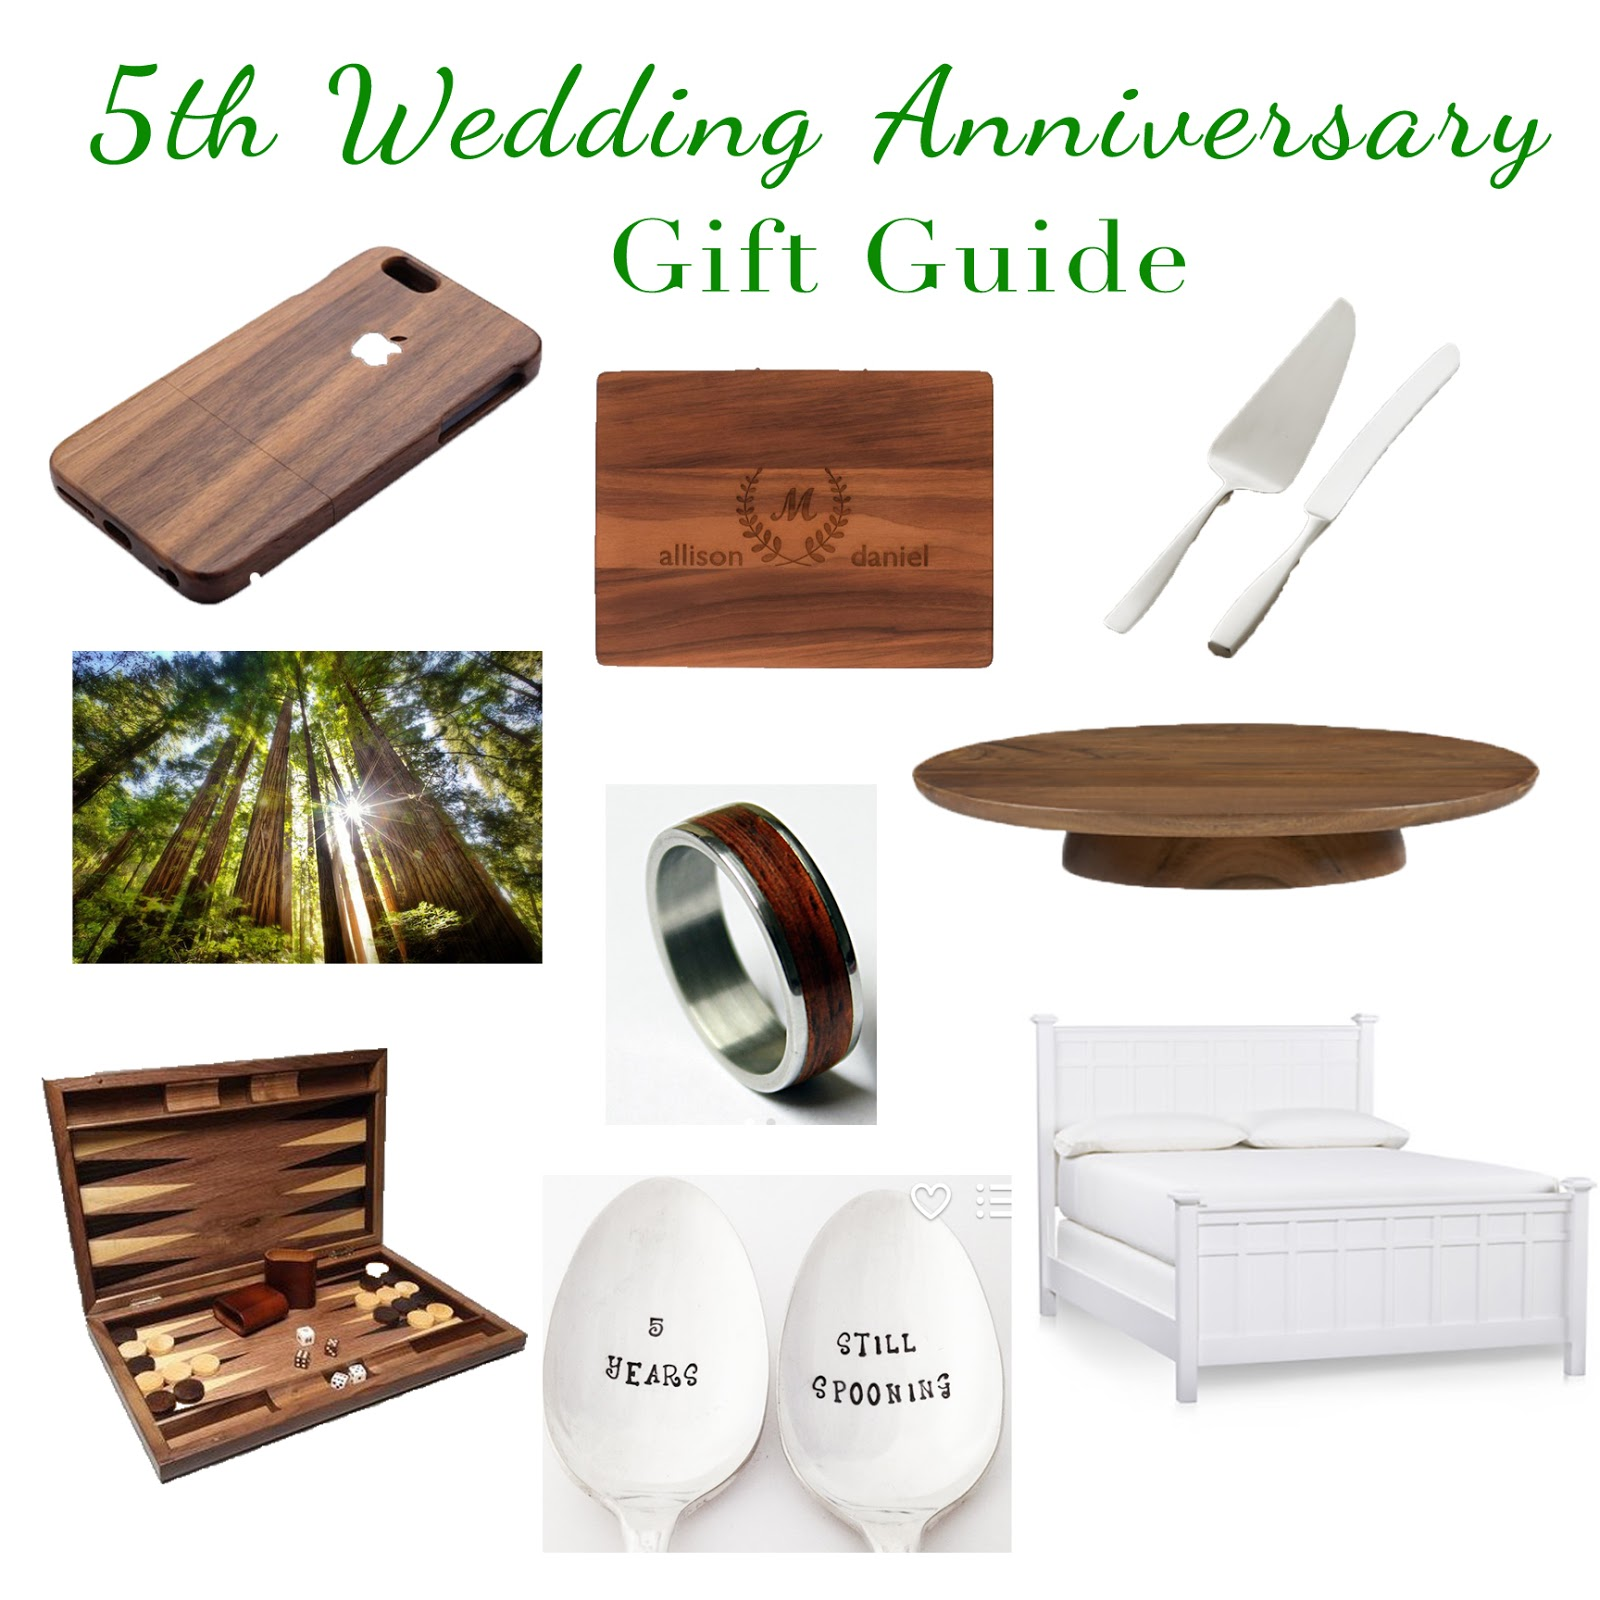 5th Wedding Anniversary Gift Ideas: The Adventure Starts Here: 5th Wedding Anniversary Gift Ideas